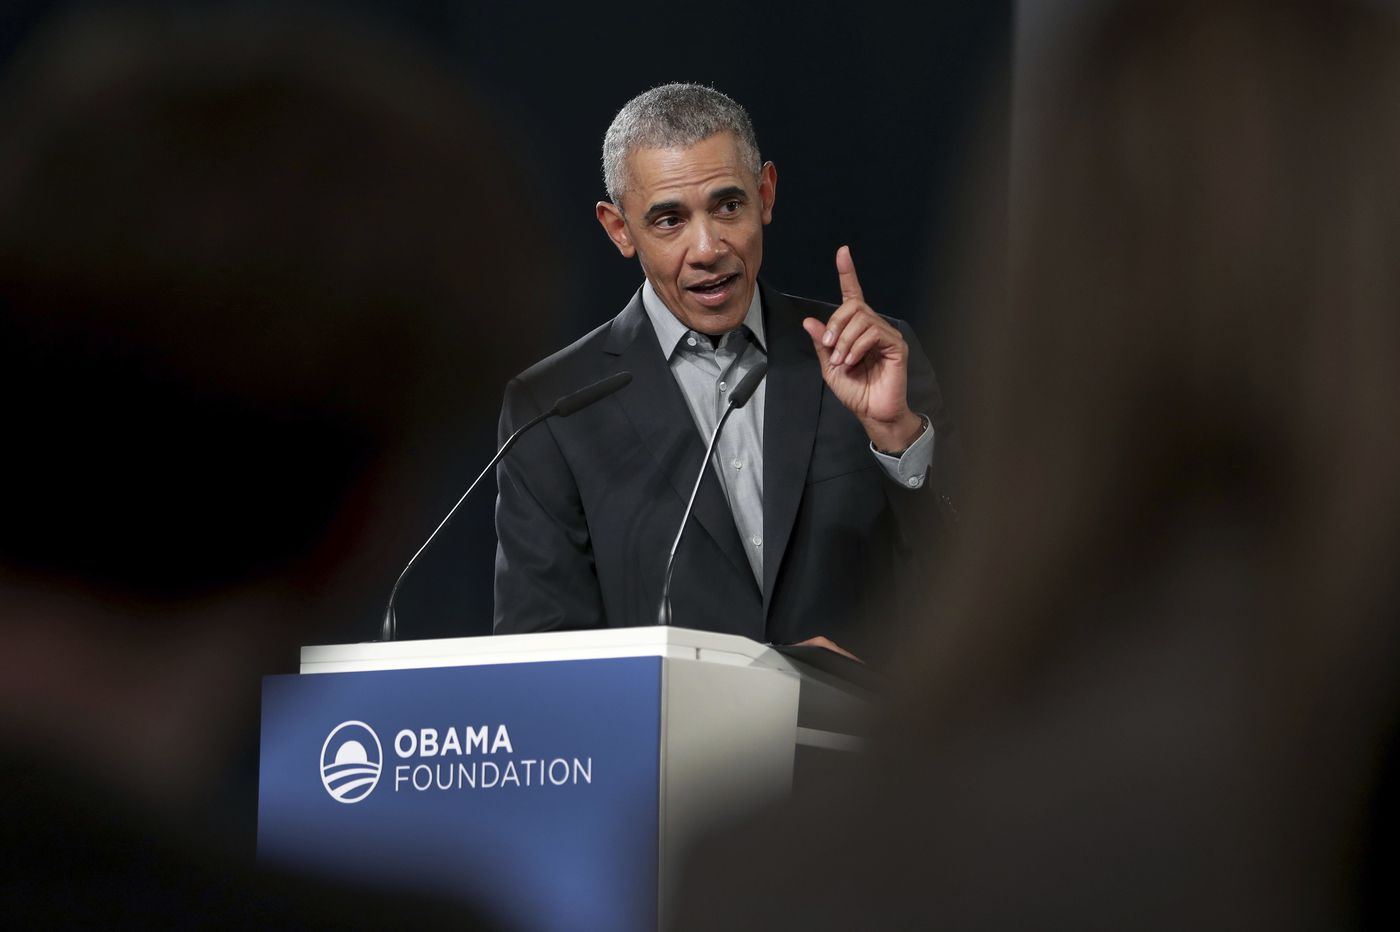 Obama speaks out on unrest, urges focus on state and local elections